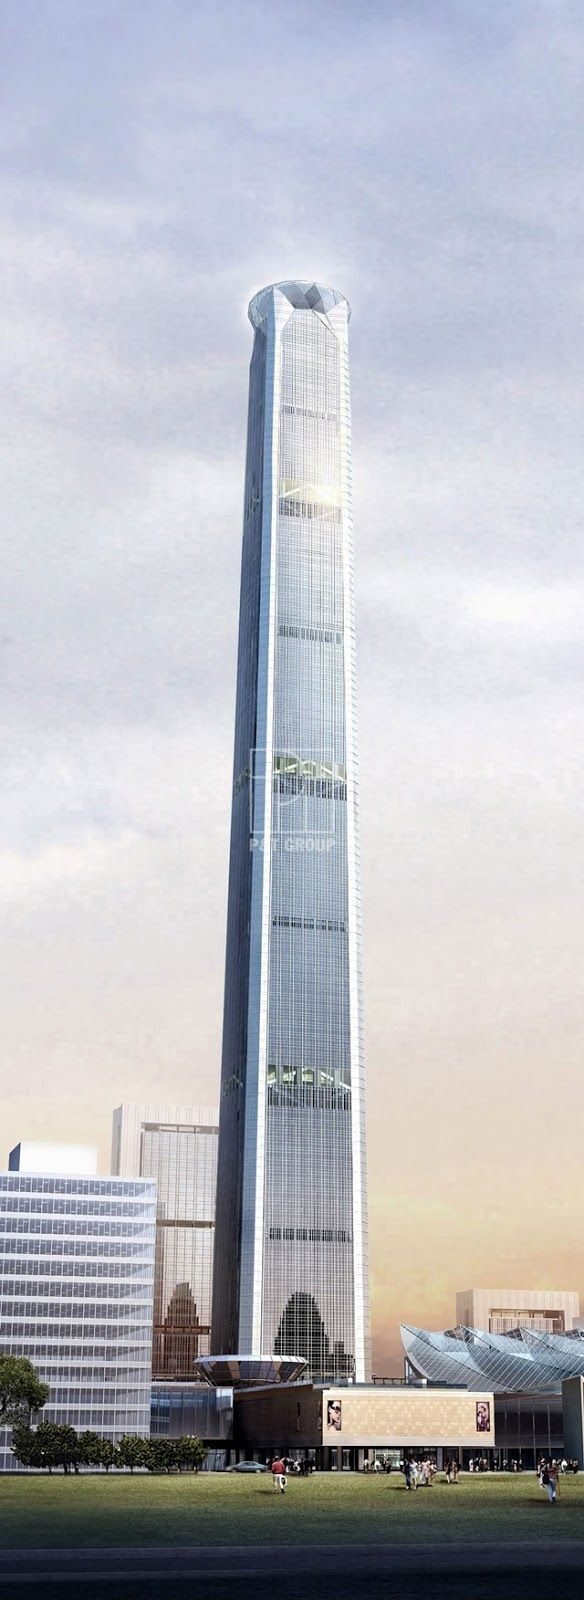 Goldin Finance 117 Tower, Tianjin, China. This building is known for its huge diamond shaped crown. It will be 597 m (1,957 ft) tall with 117 floors.